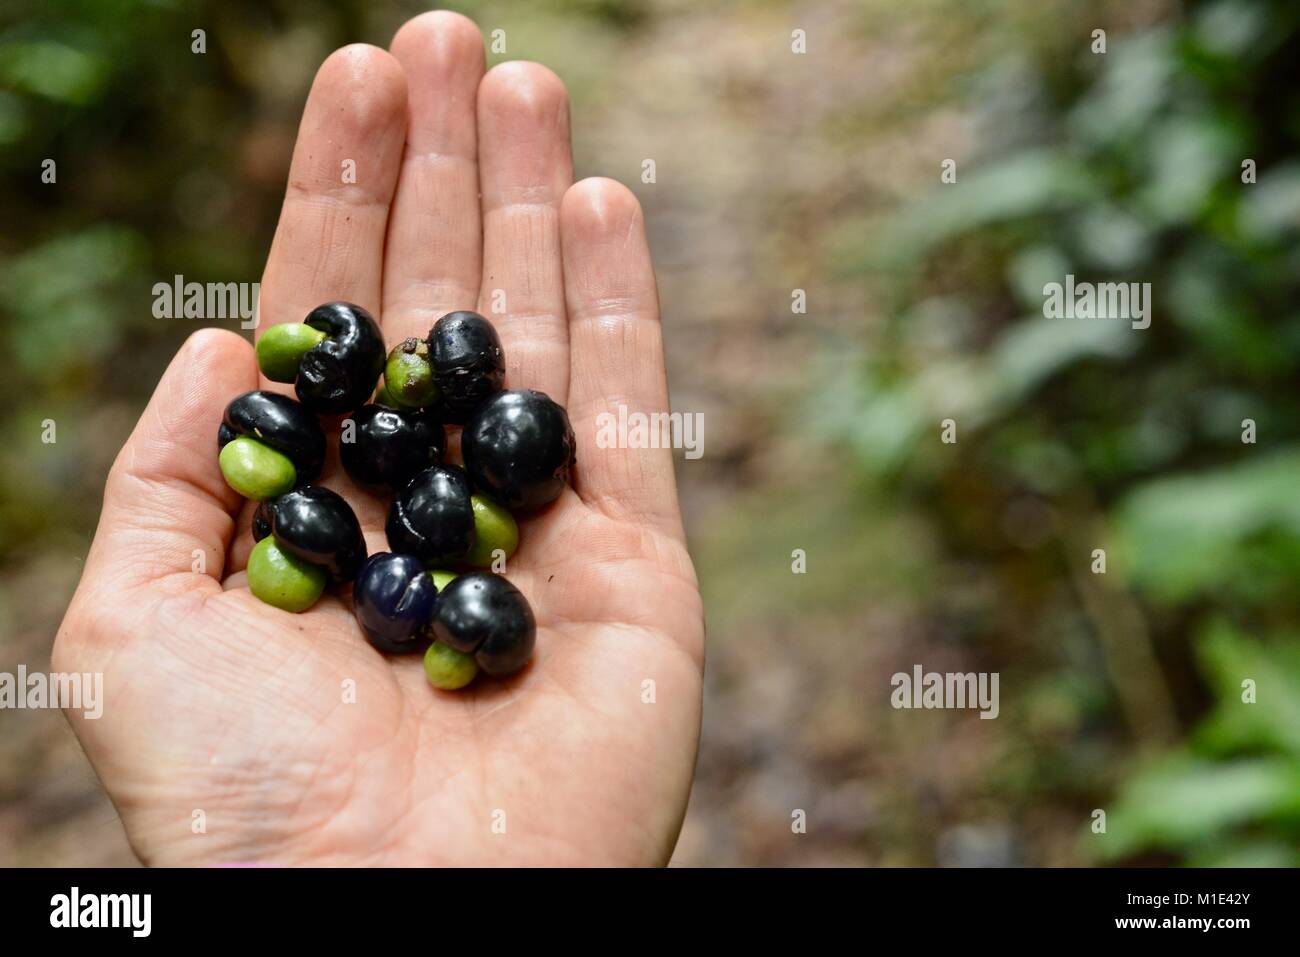 Black rainforest berries found on the forest floor in a man's hand, Paluma, Queensland, Australia - Stock Image